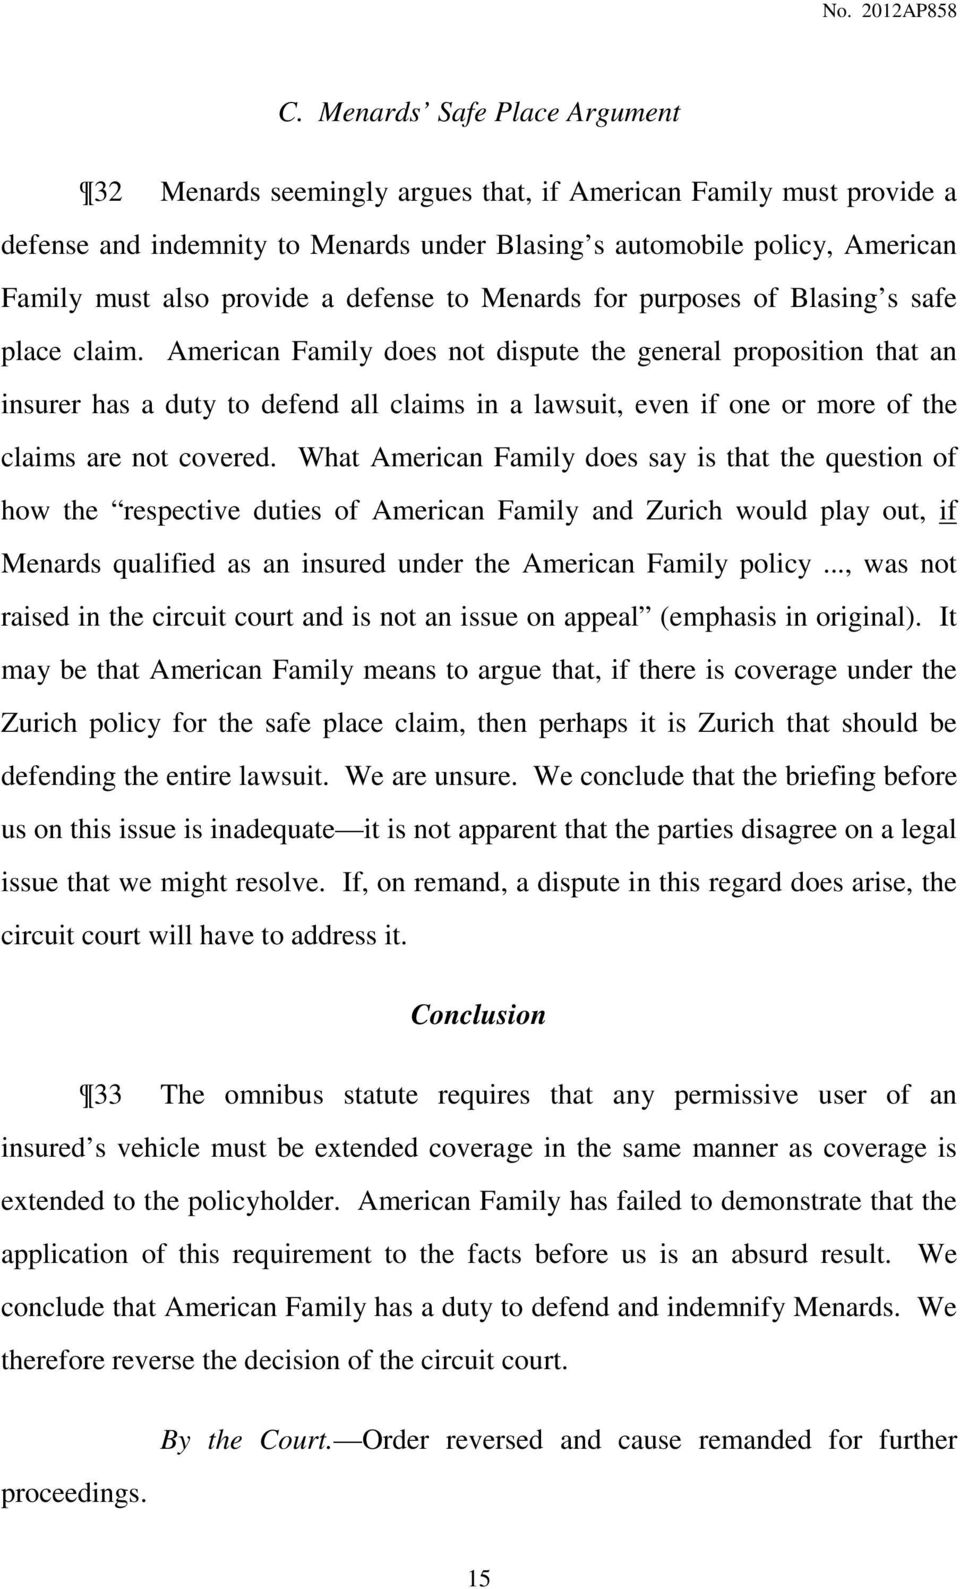 American Family does not dispute the general proposition that an insurer has a duty to defend all claims in a lawsuit, even if one or more of the claims are not covered.